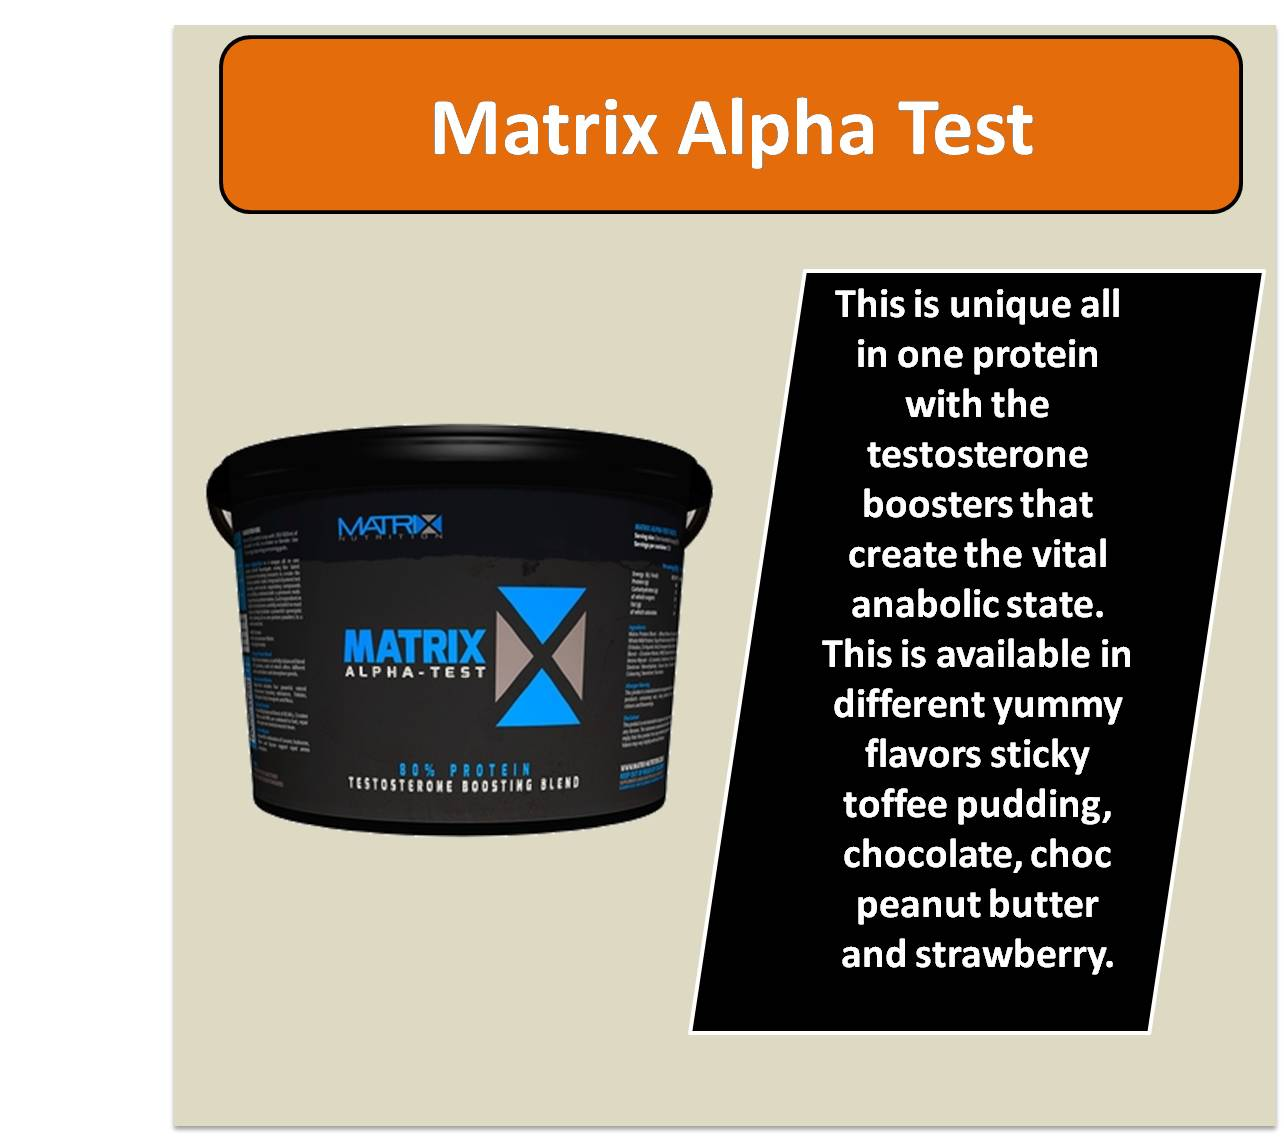 Matrix Alpha Test